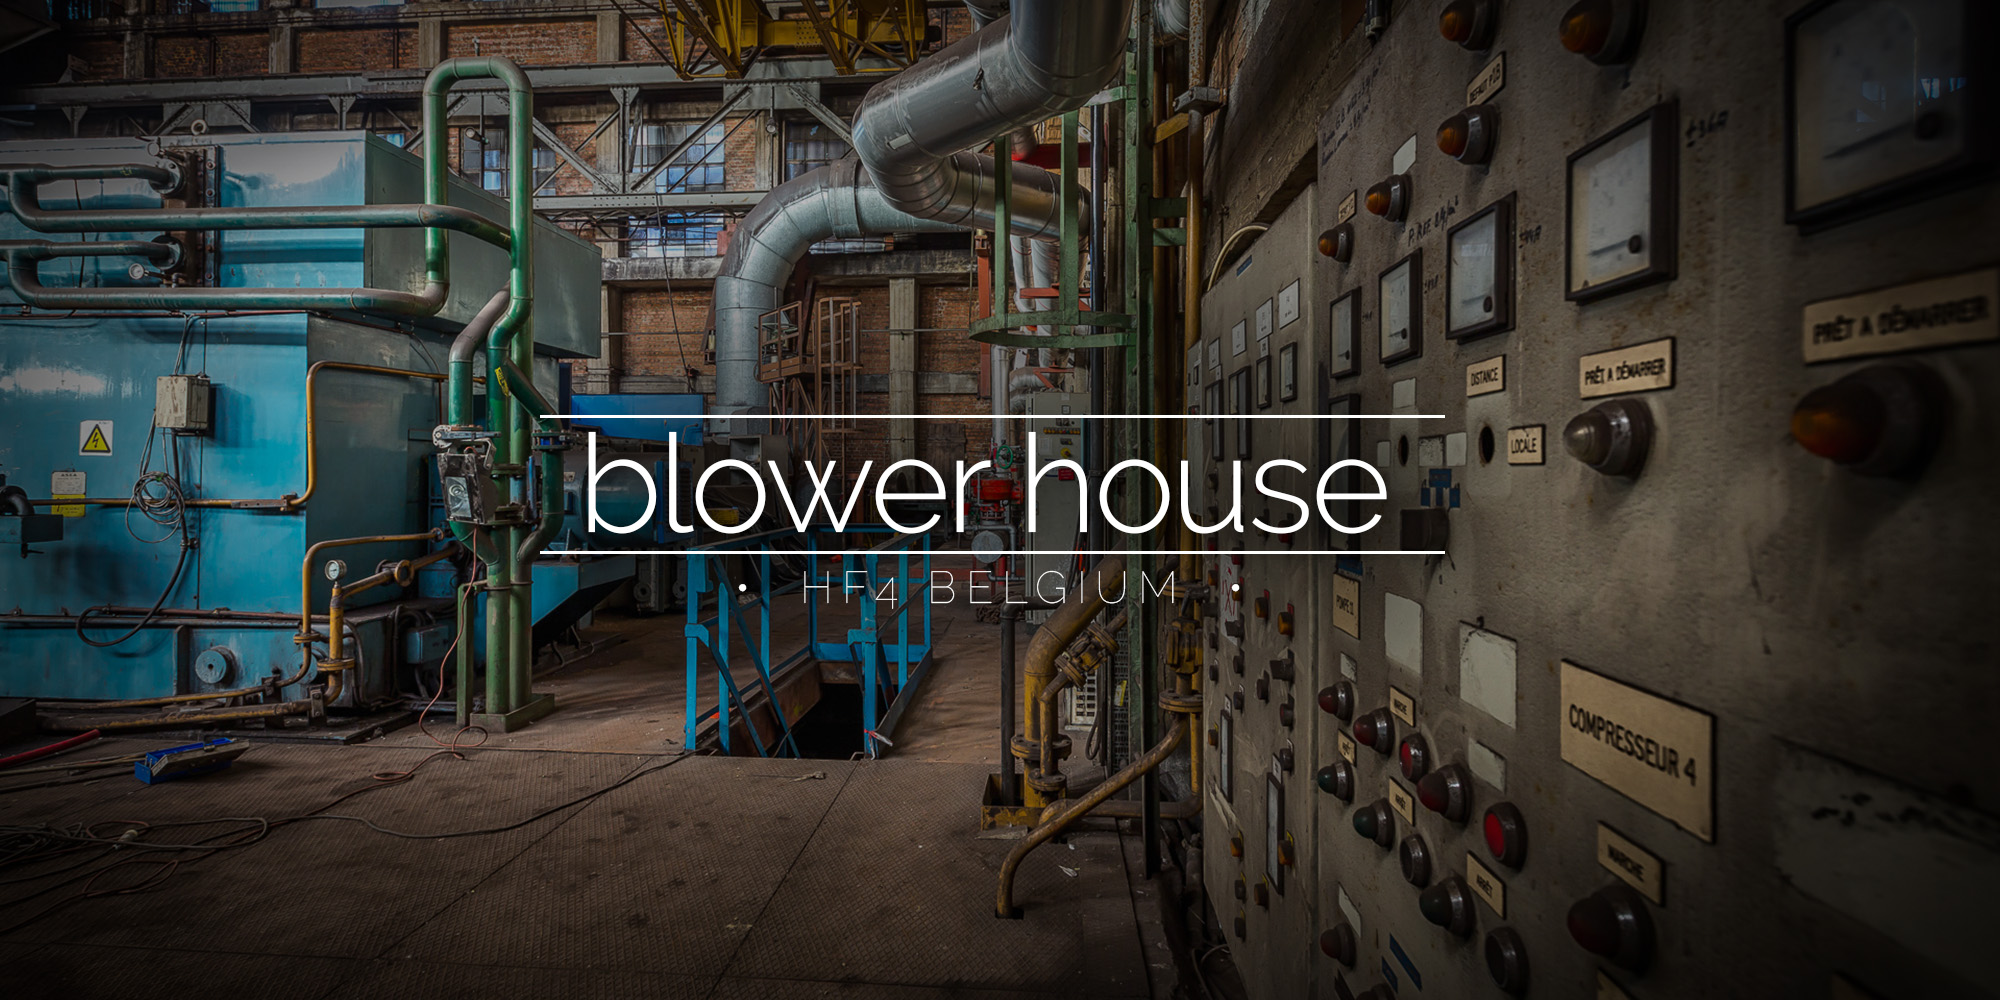 HF4 Blast Furnace Turbo Blower House, Belgium